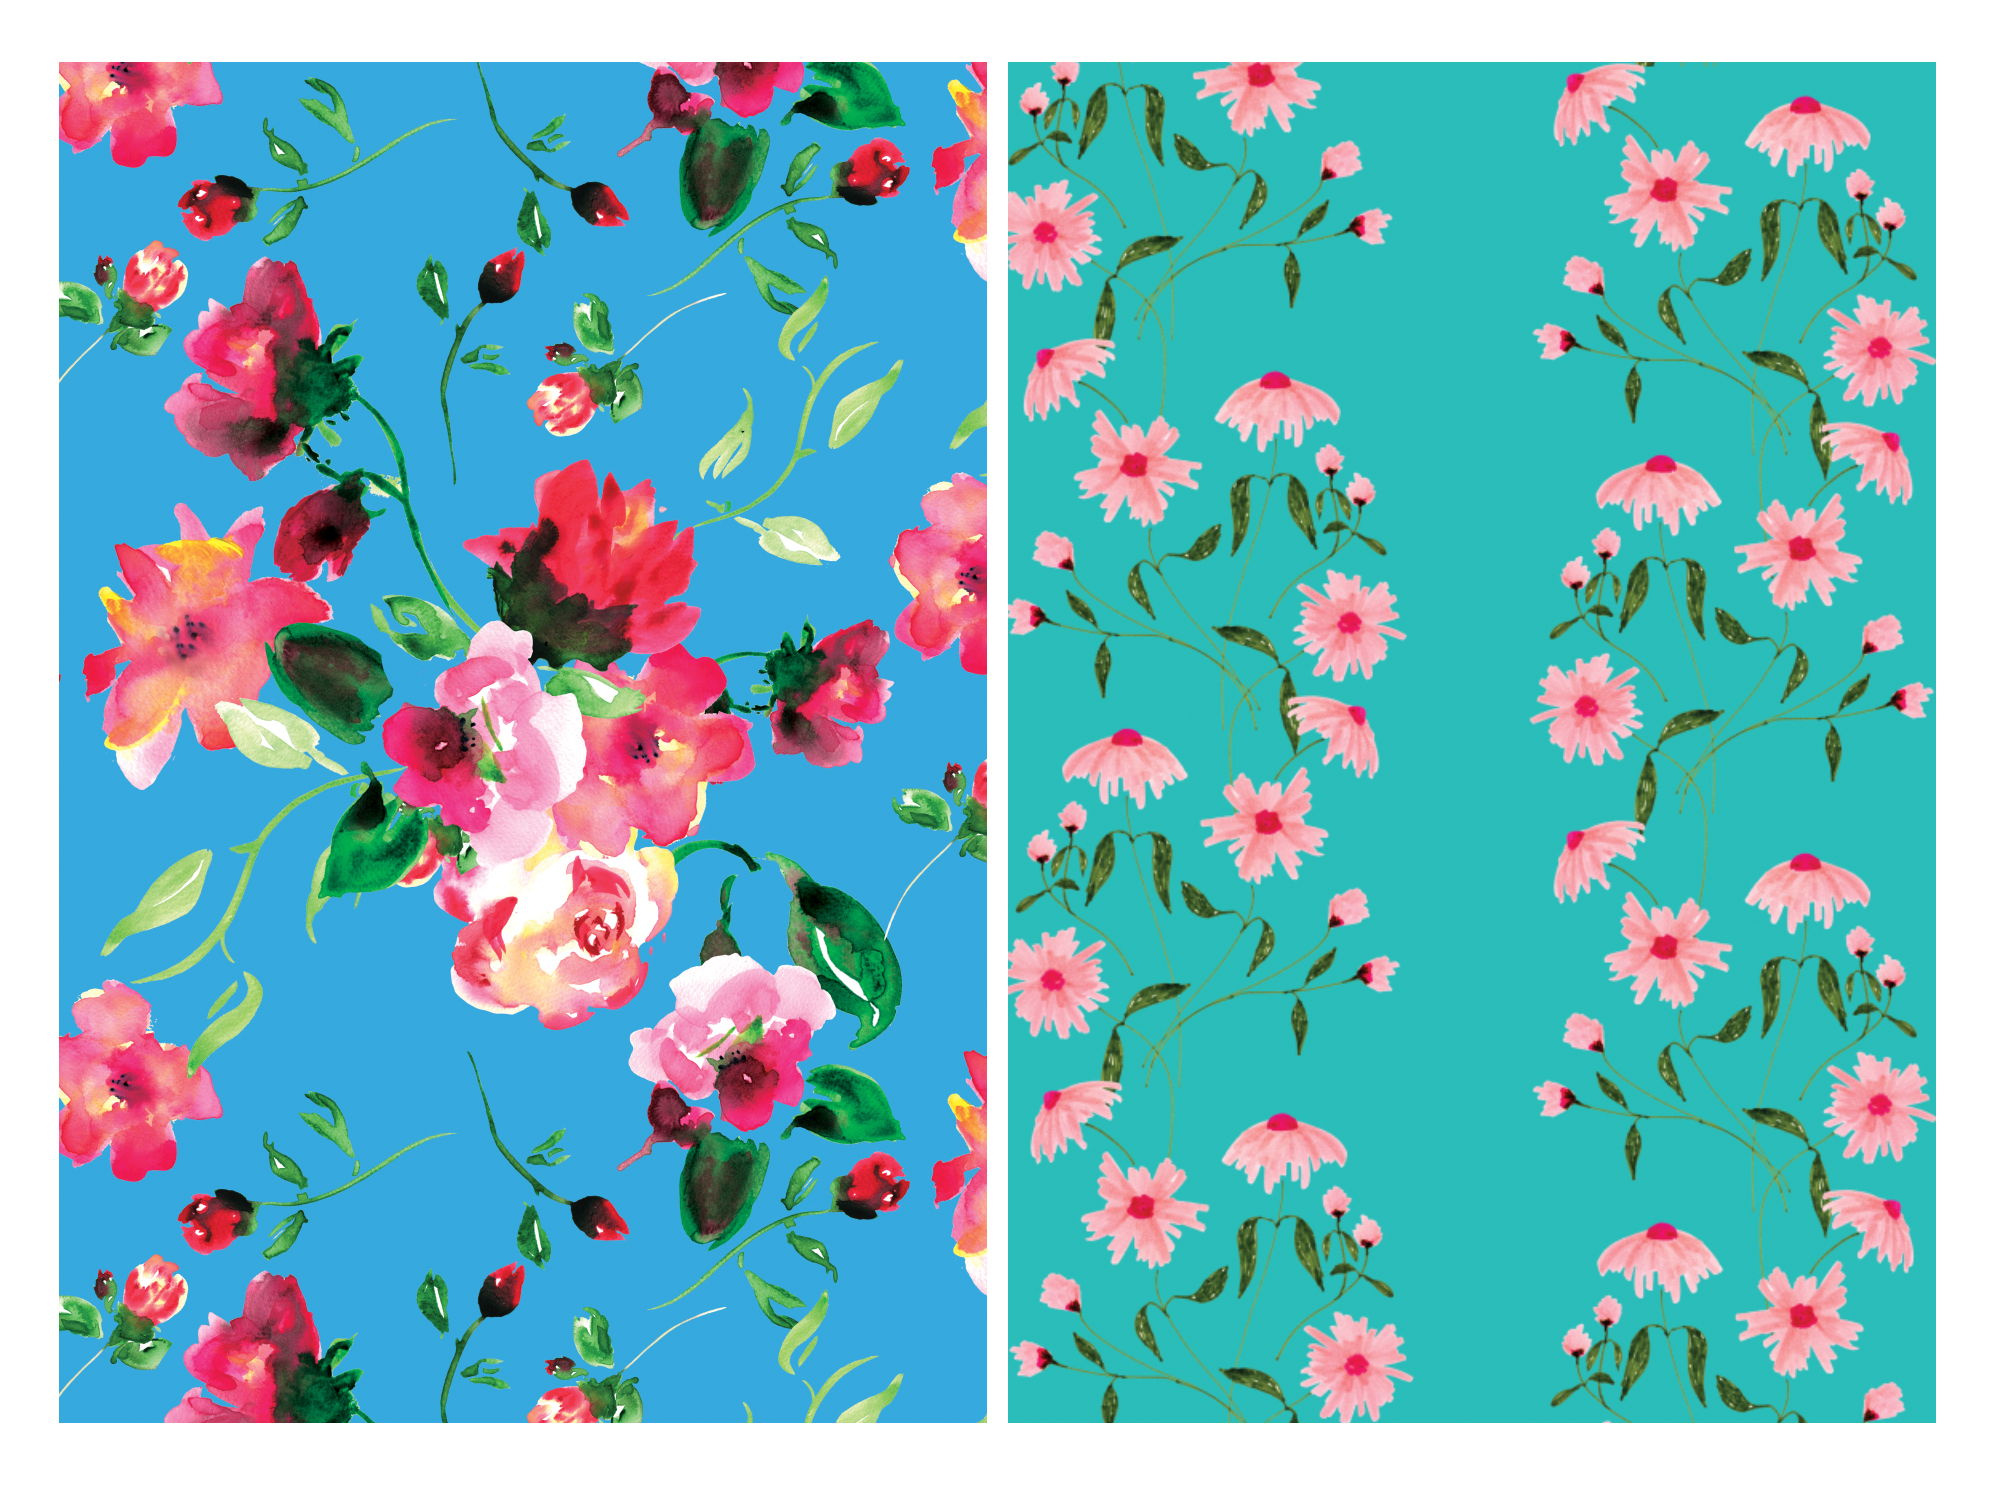 patterns for squarespace pink flowers.jpg